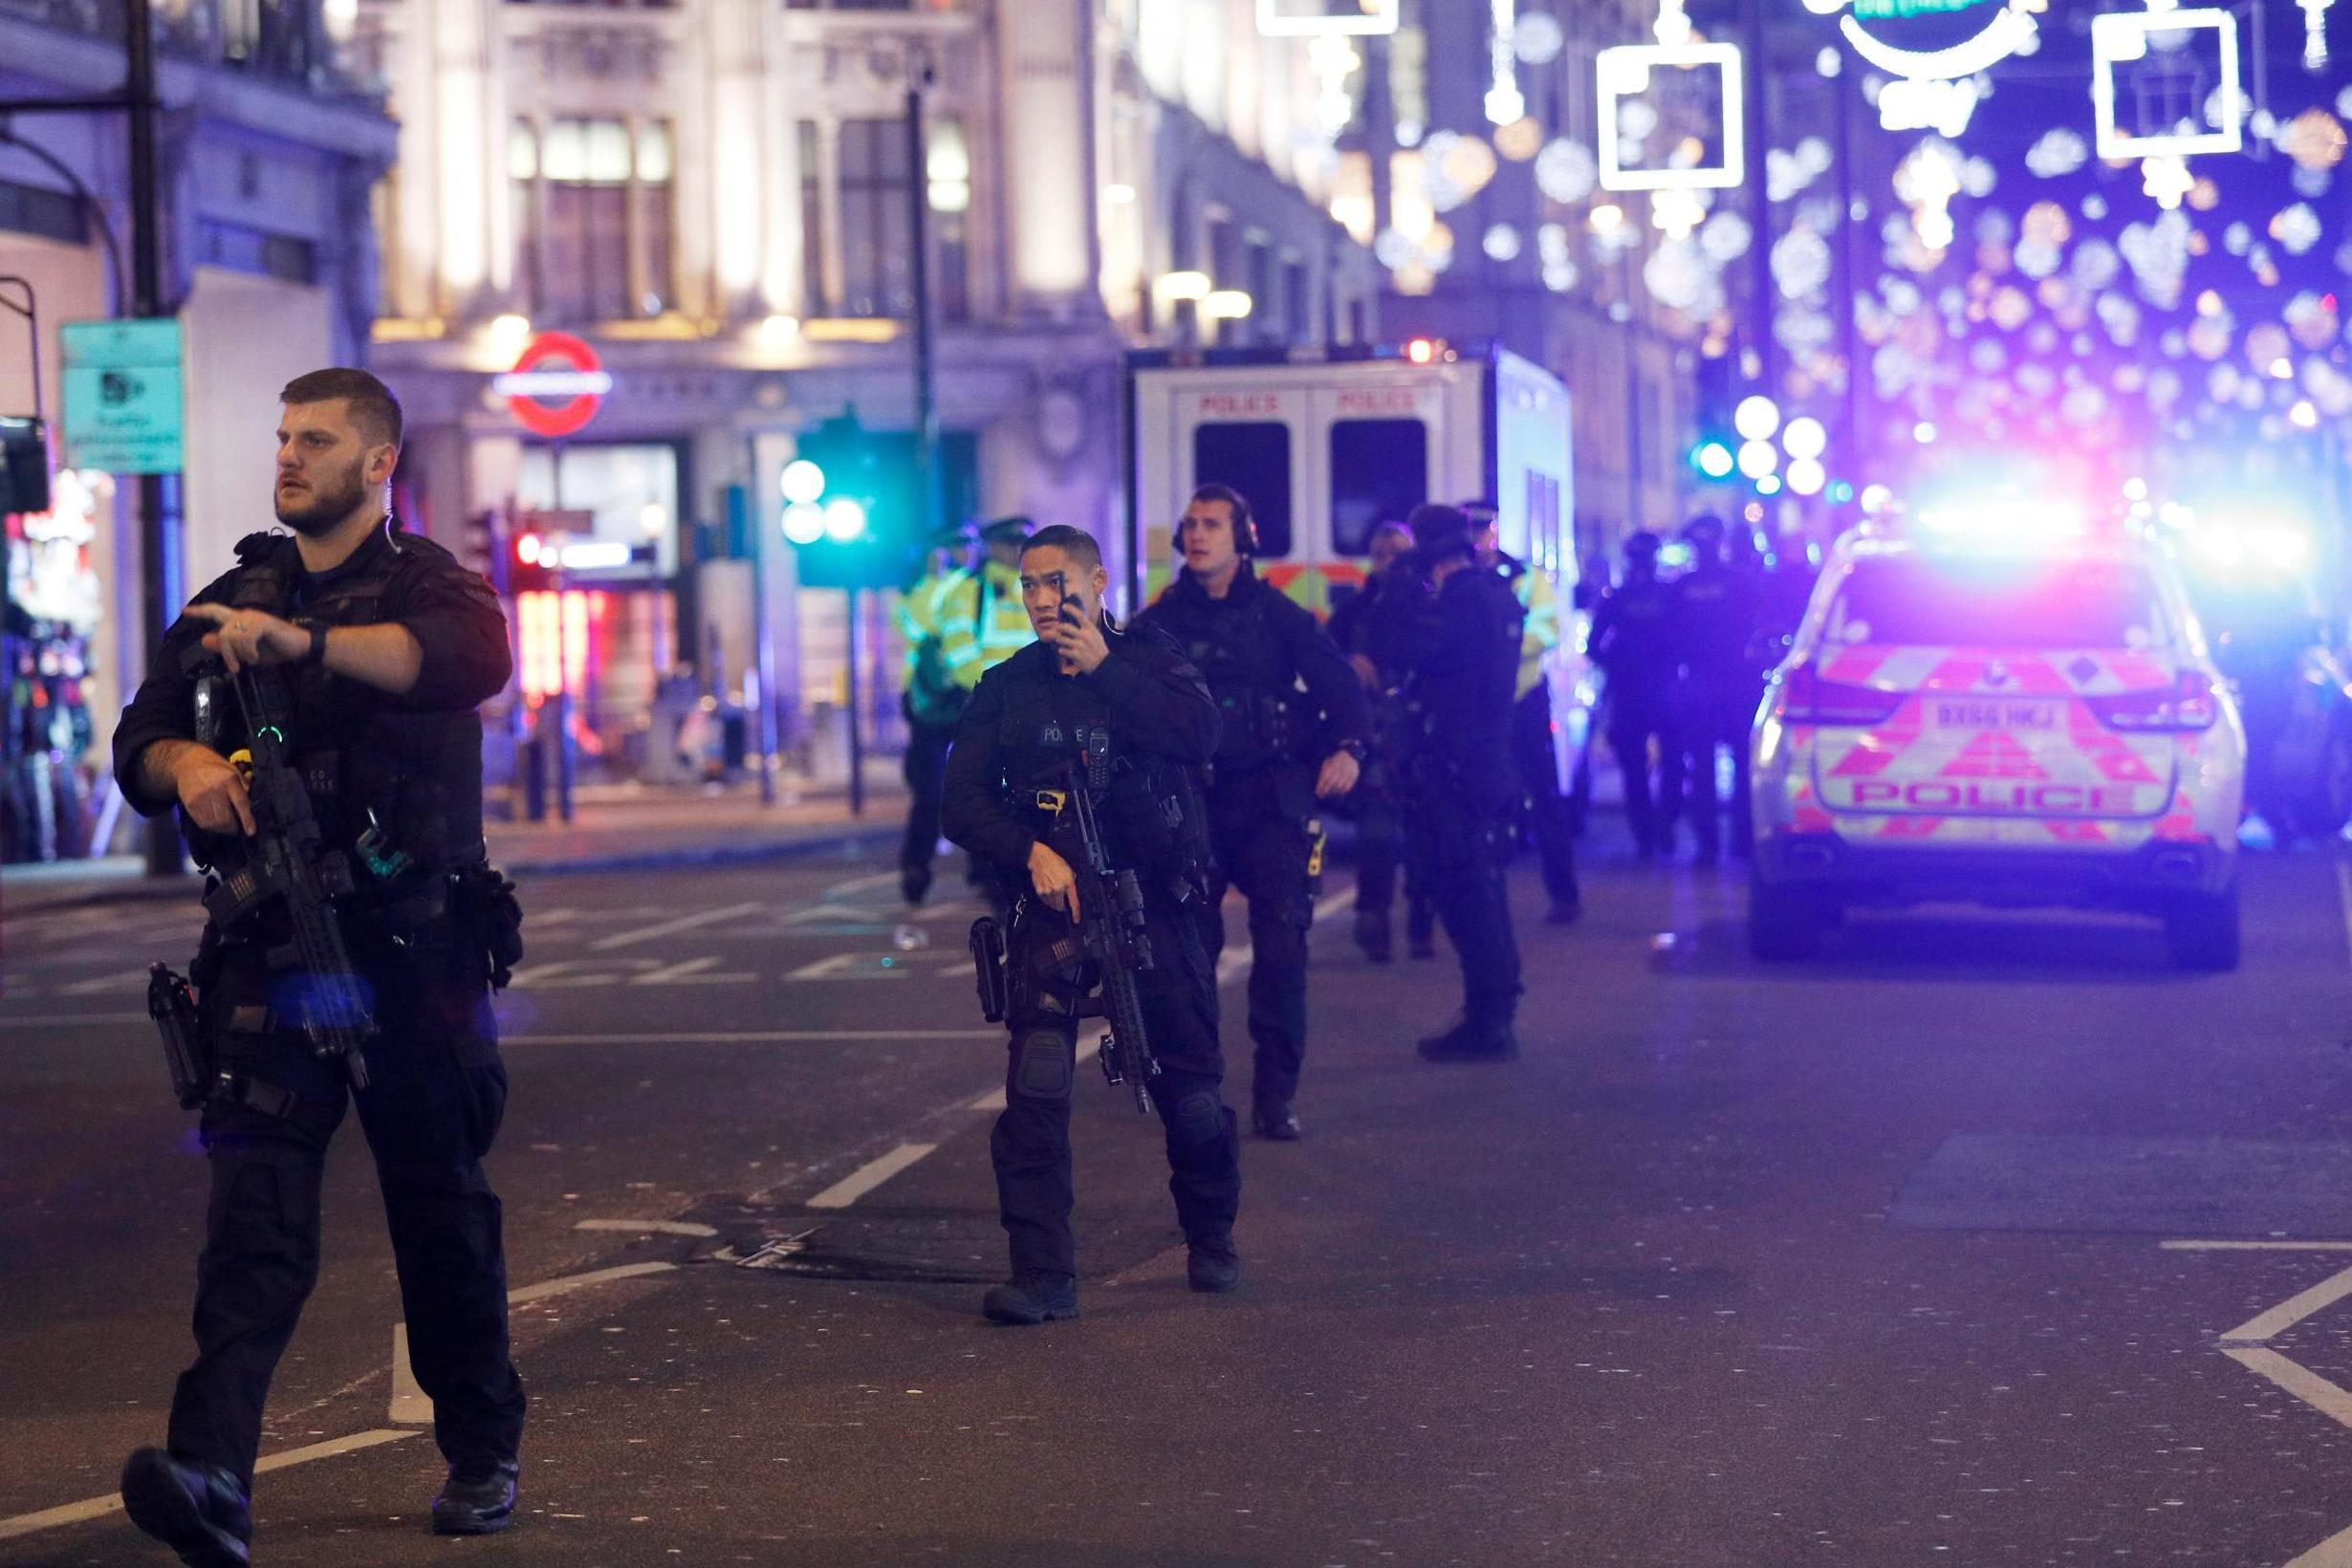 Oxford Circus; Armed police response after 'shots fired' at Tube station and on London's busiest shopping street, London Evening Standard